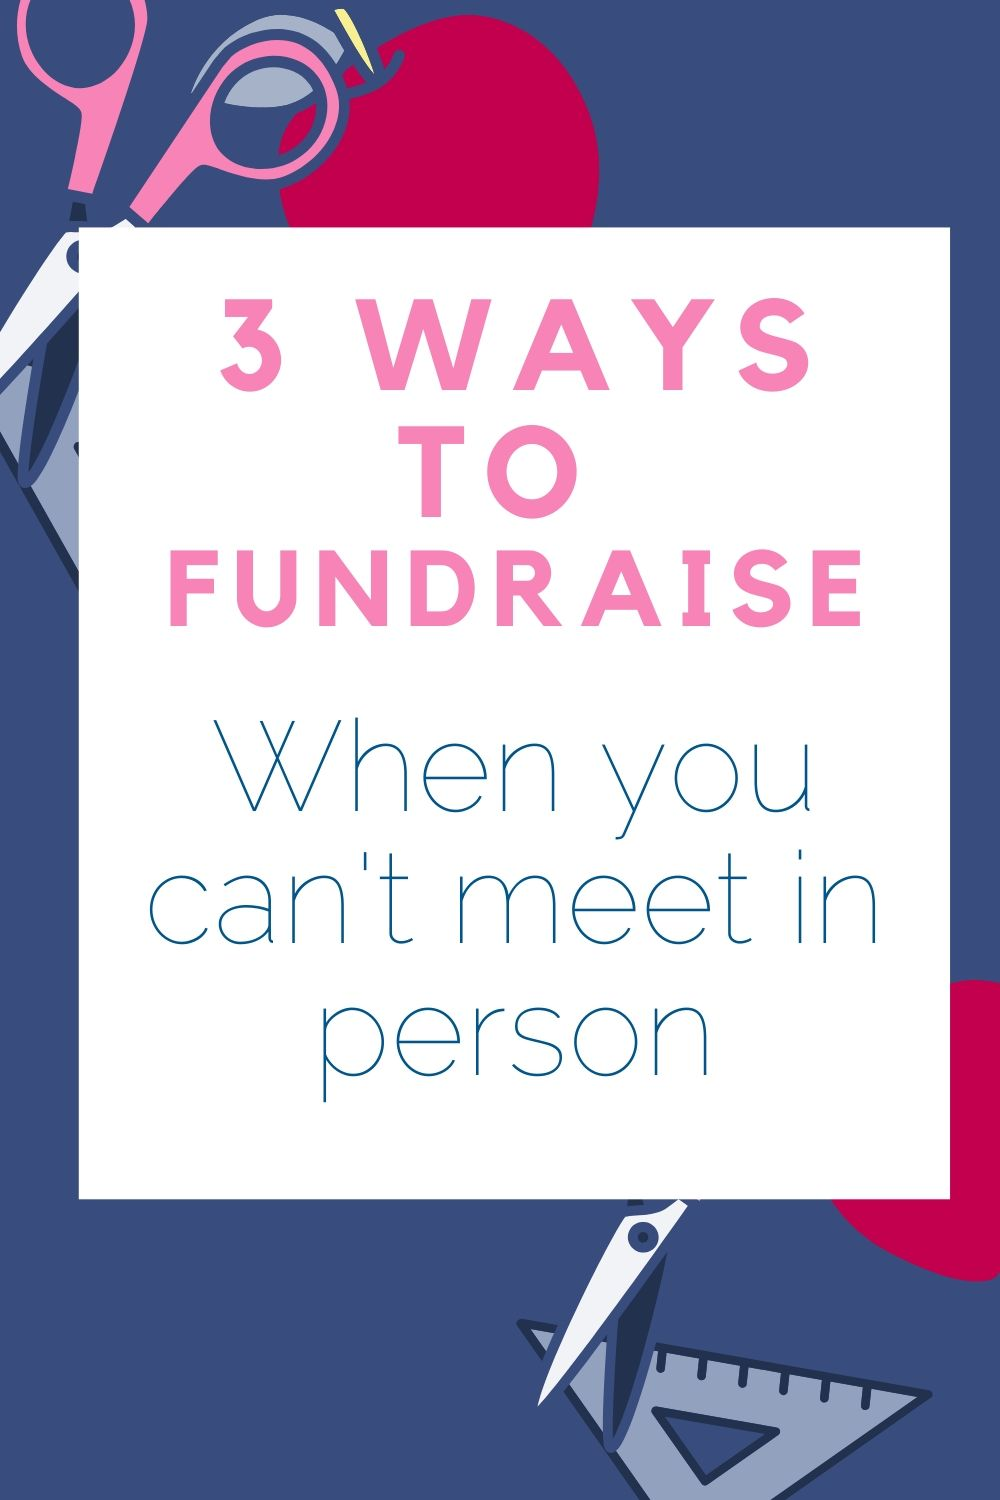 Three Ways to Fundraise During Covid-19